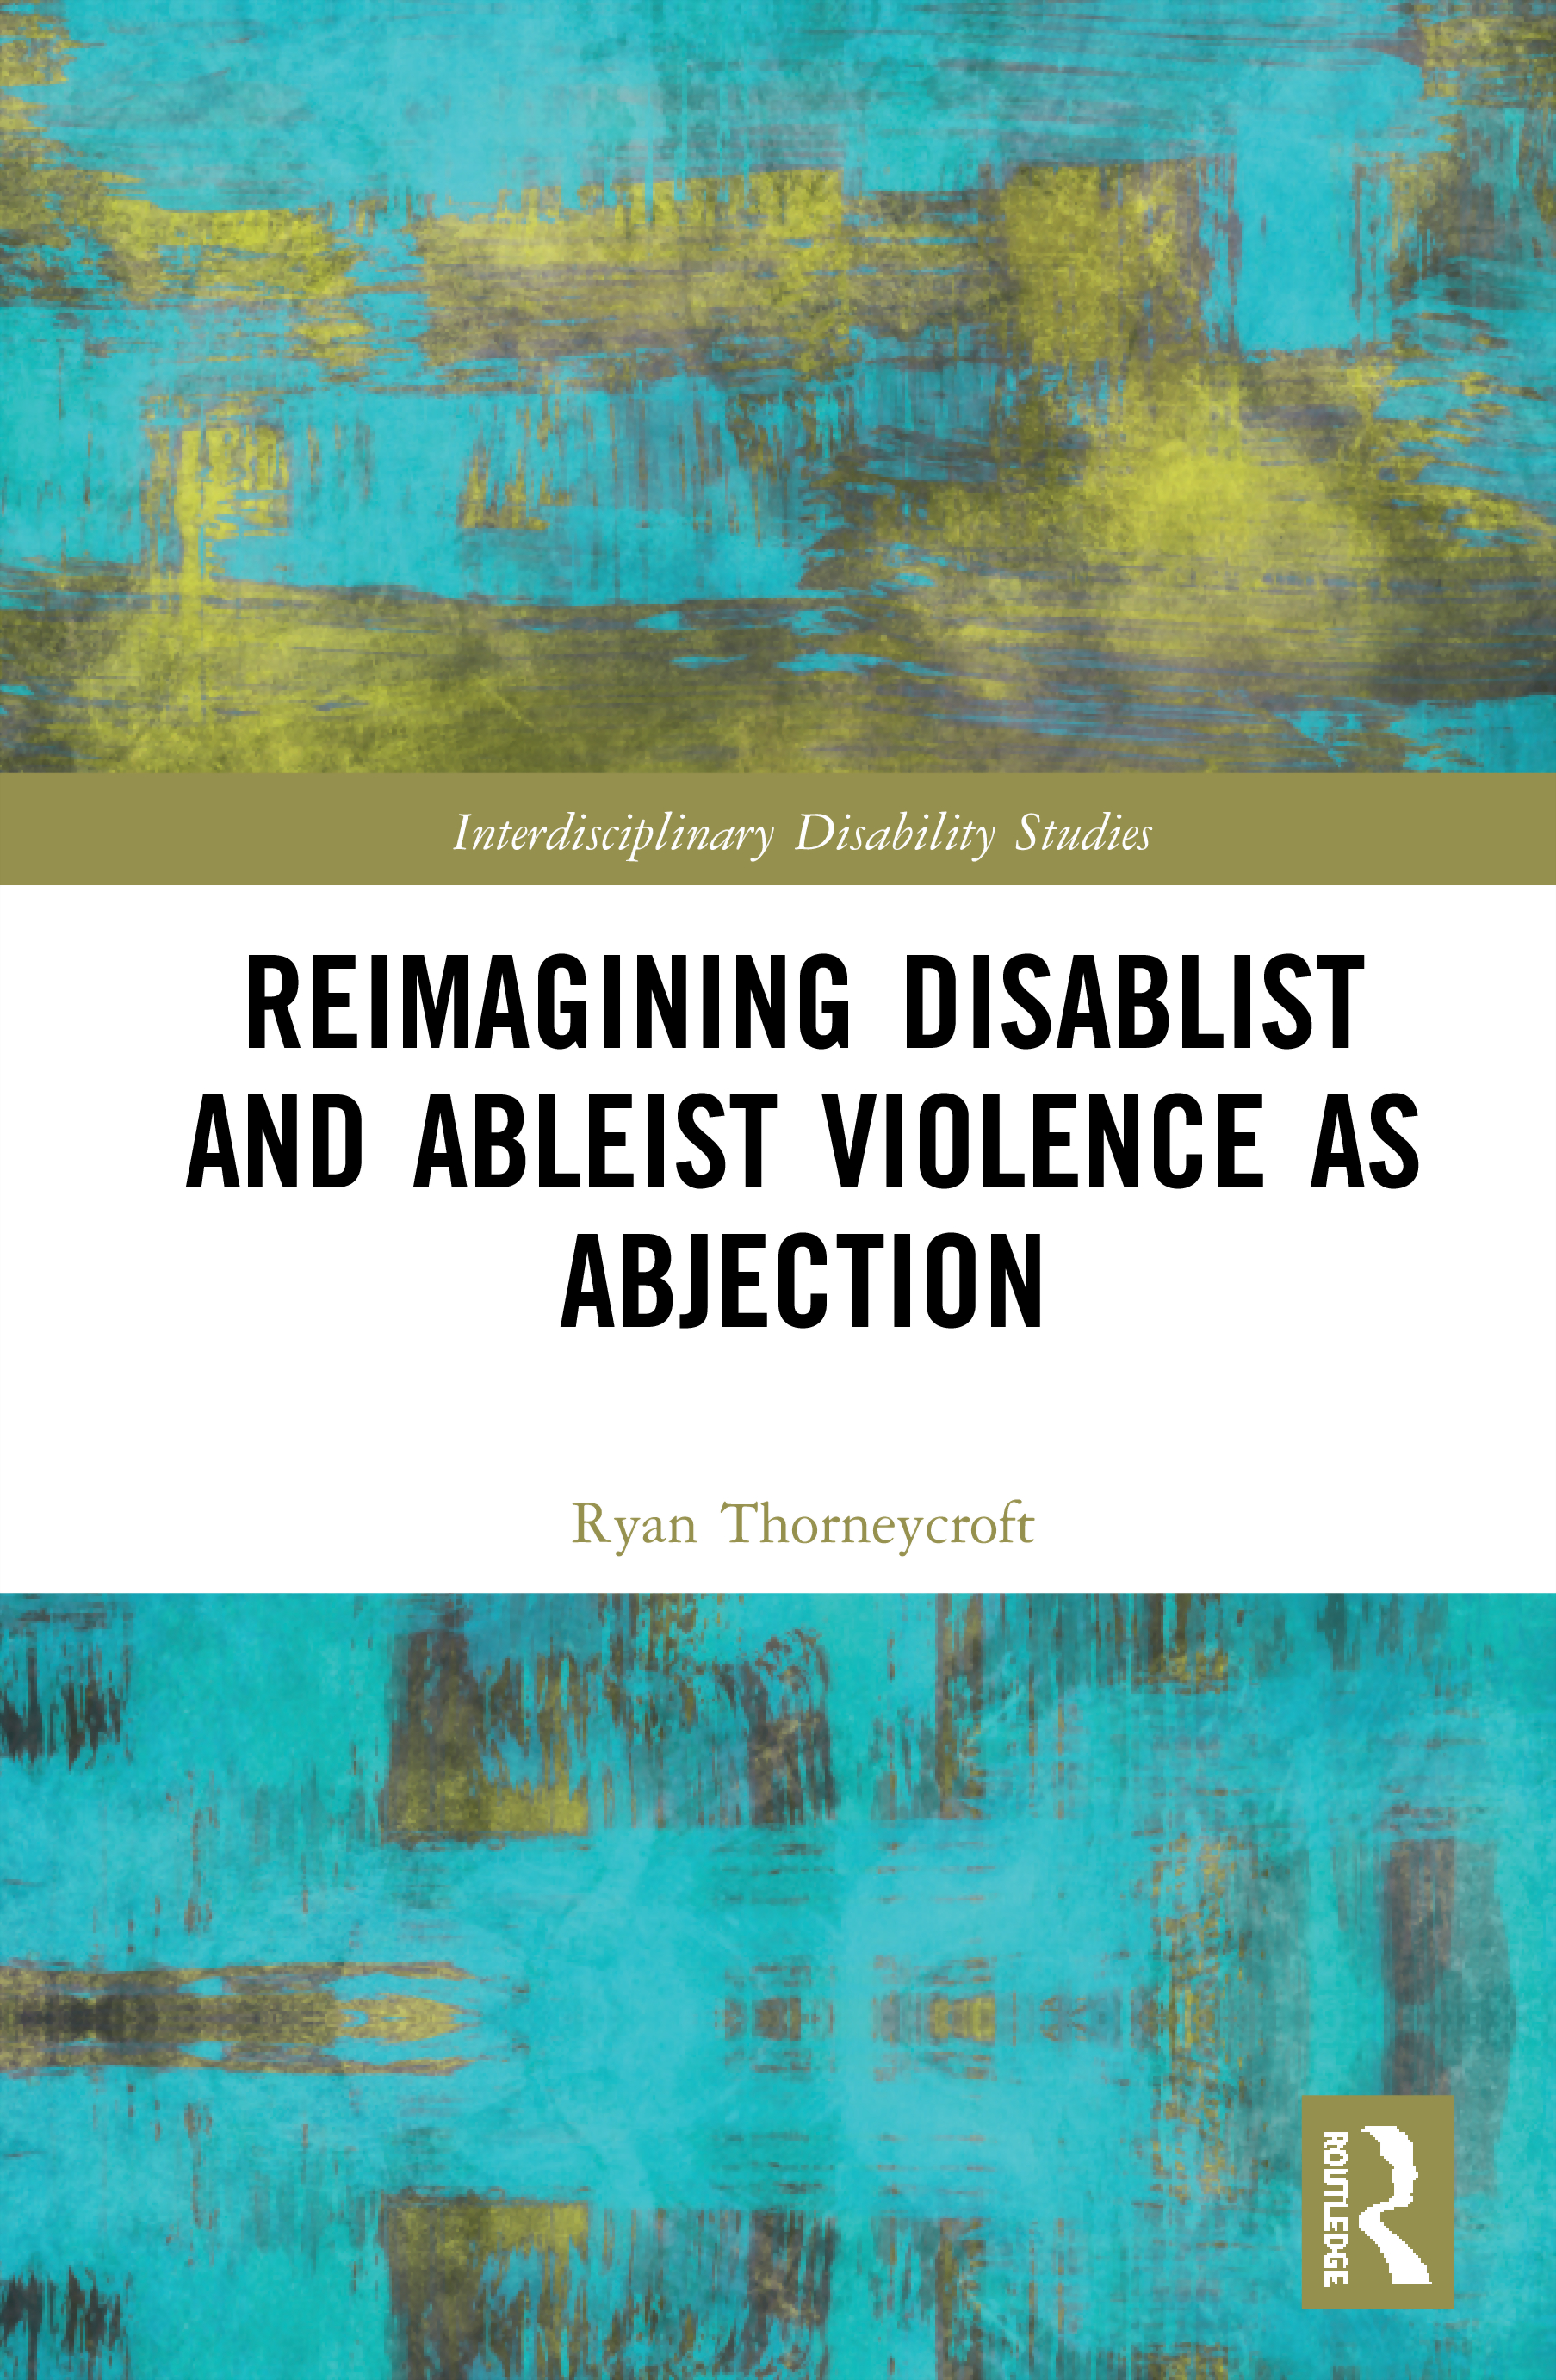 Reimagining Disablist and Ableist Violence as Abjection book cover